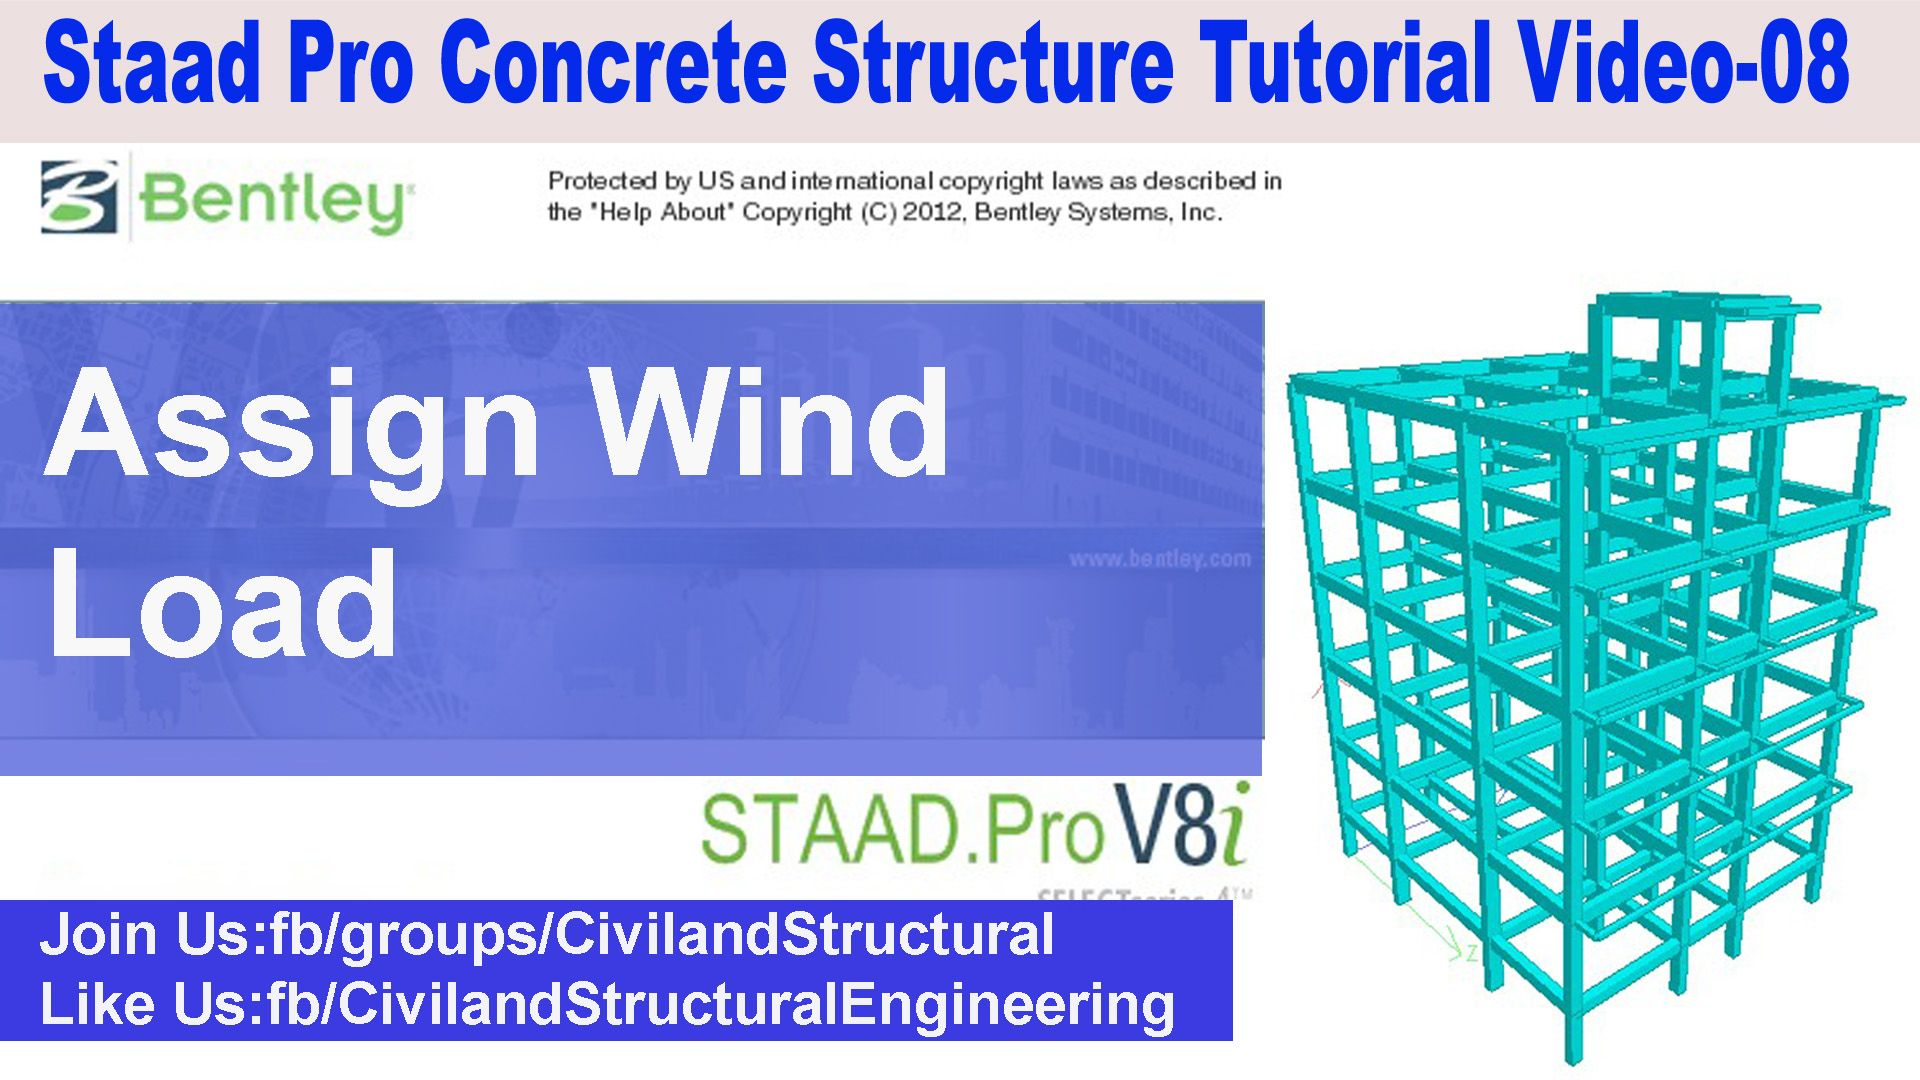 How to Assign Wind Load in Staad Pro V8i V 08 | Staad Pro